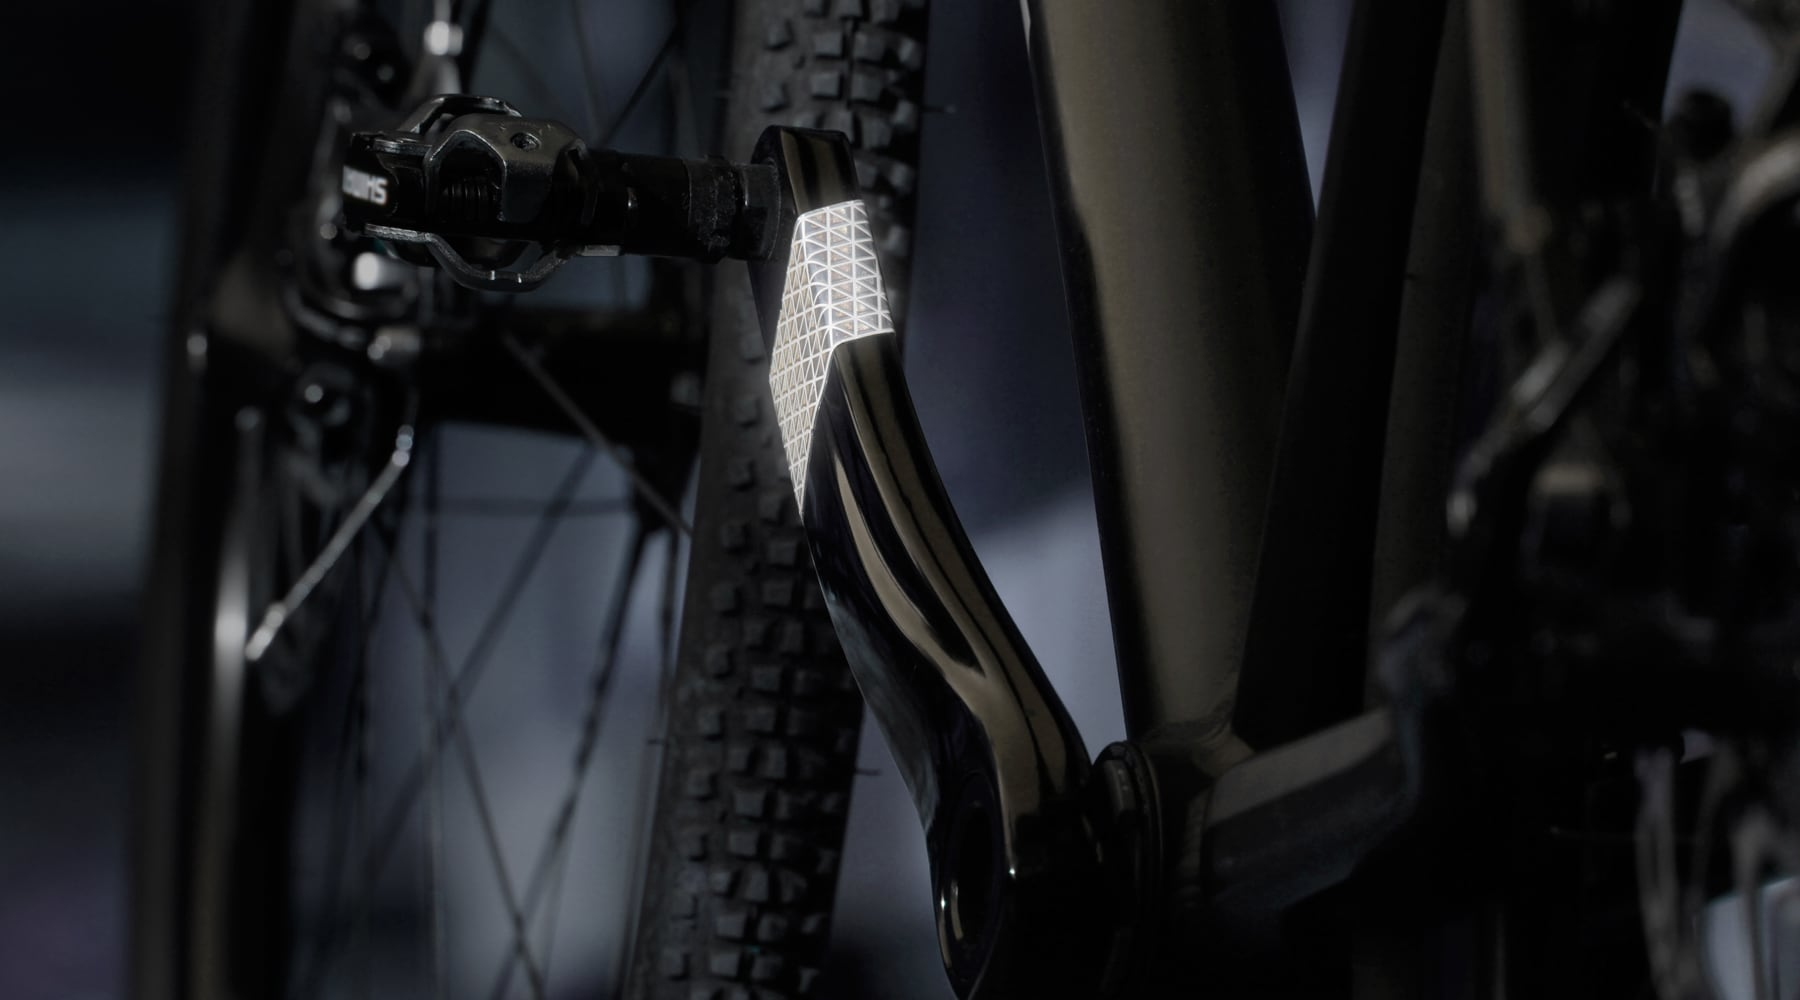 FLECTR VORTEX is the first bike crank reflector